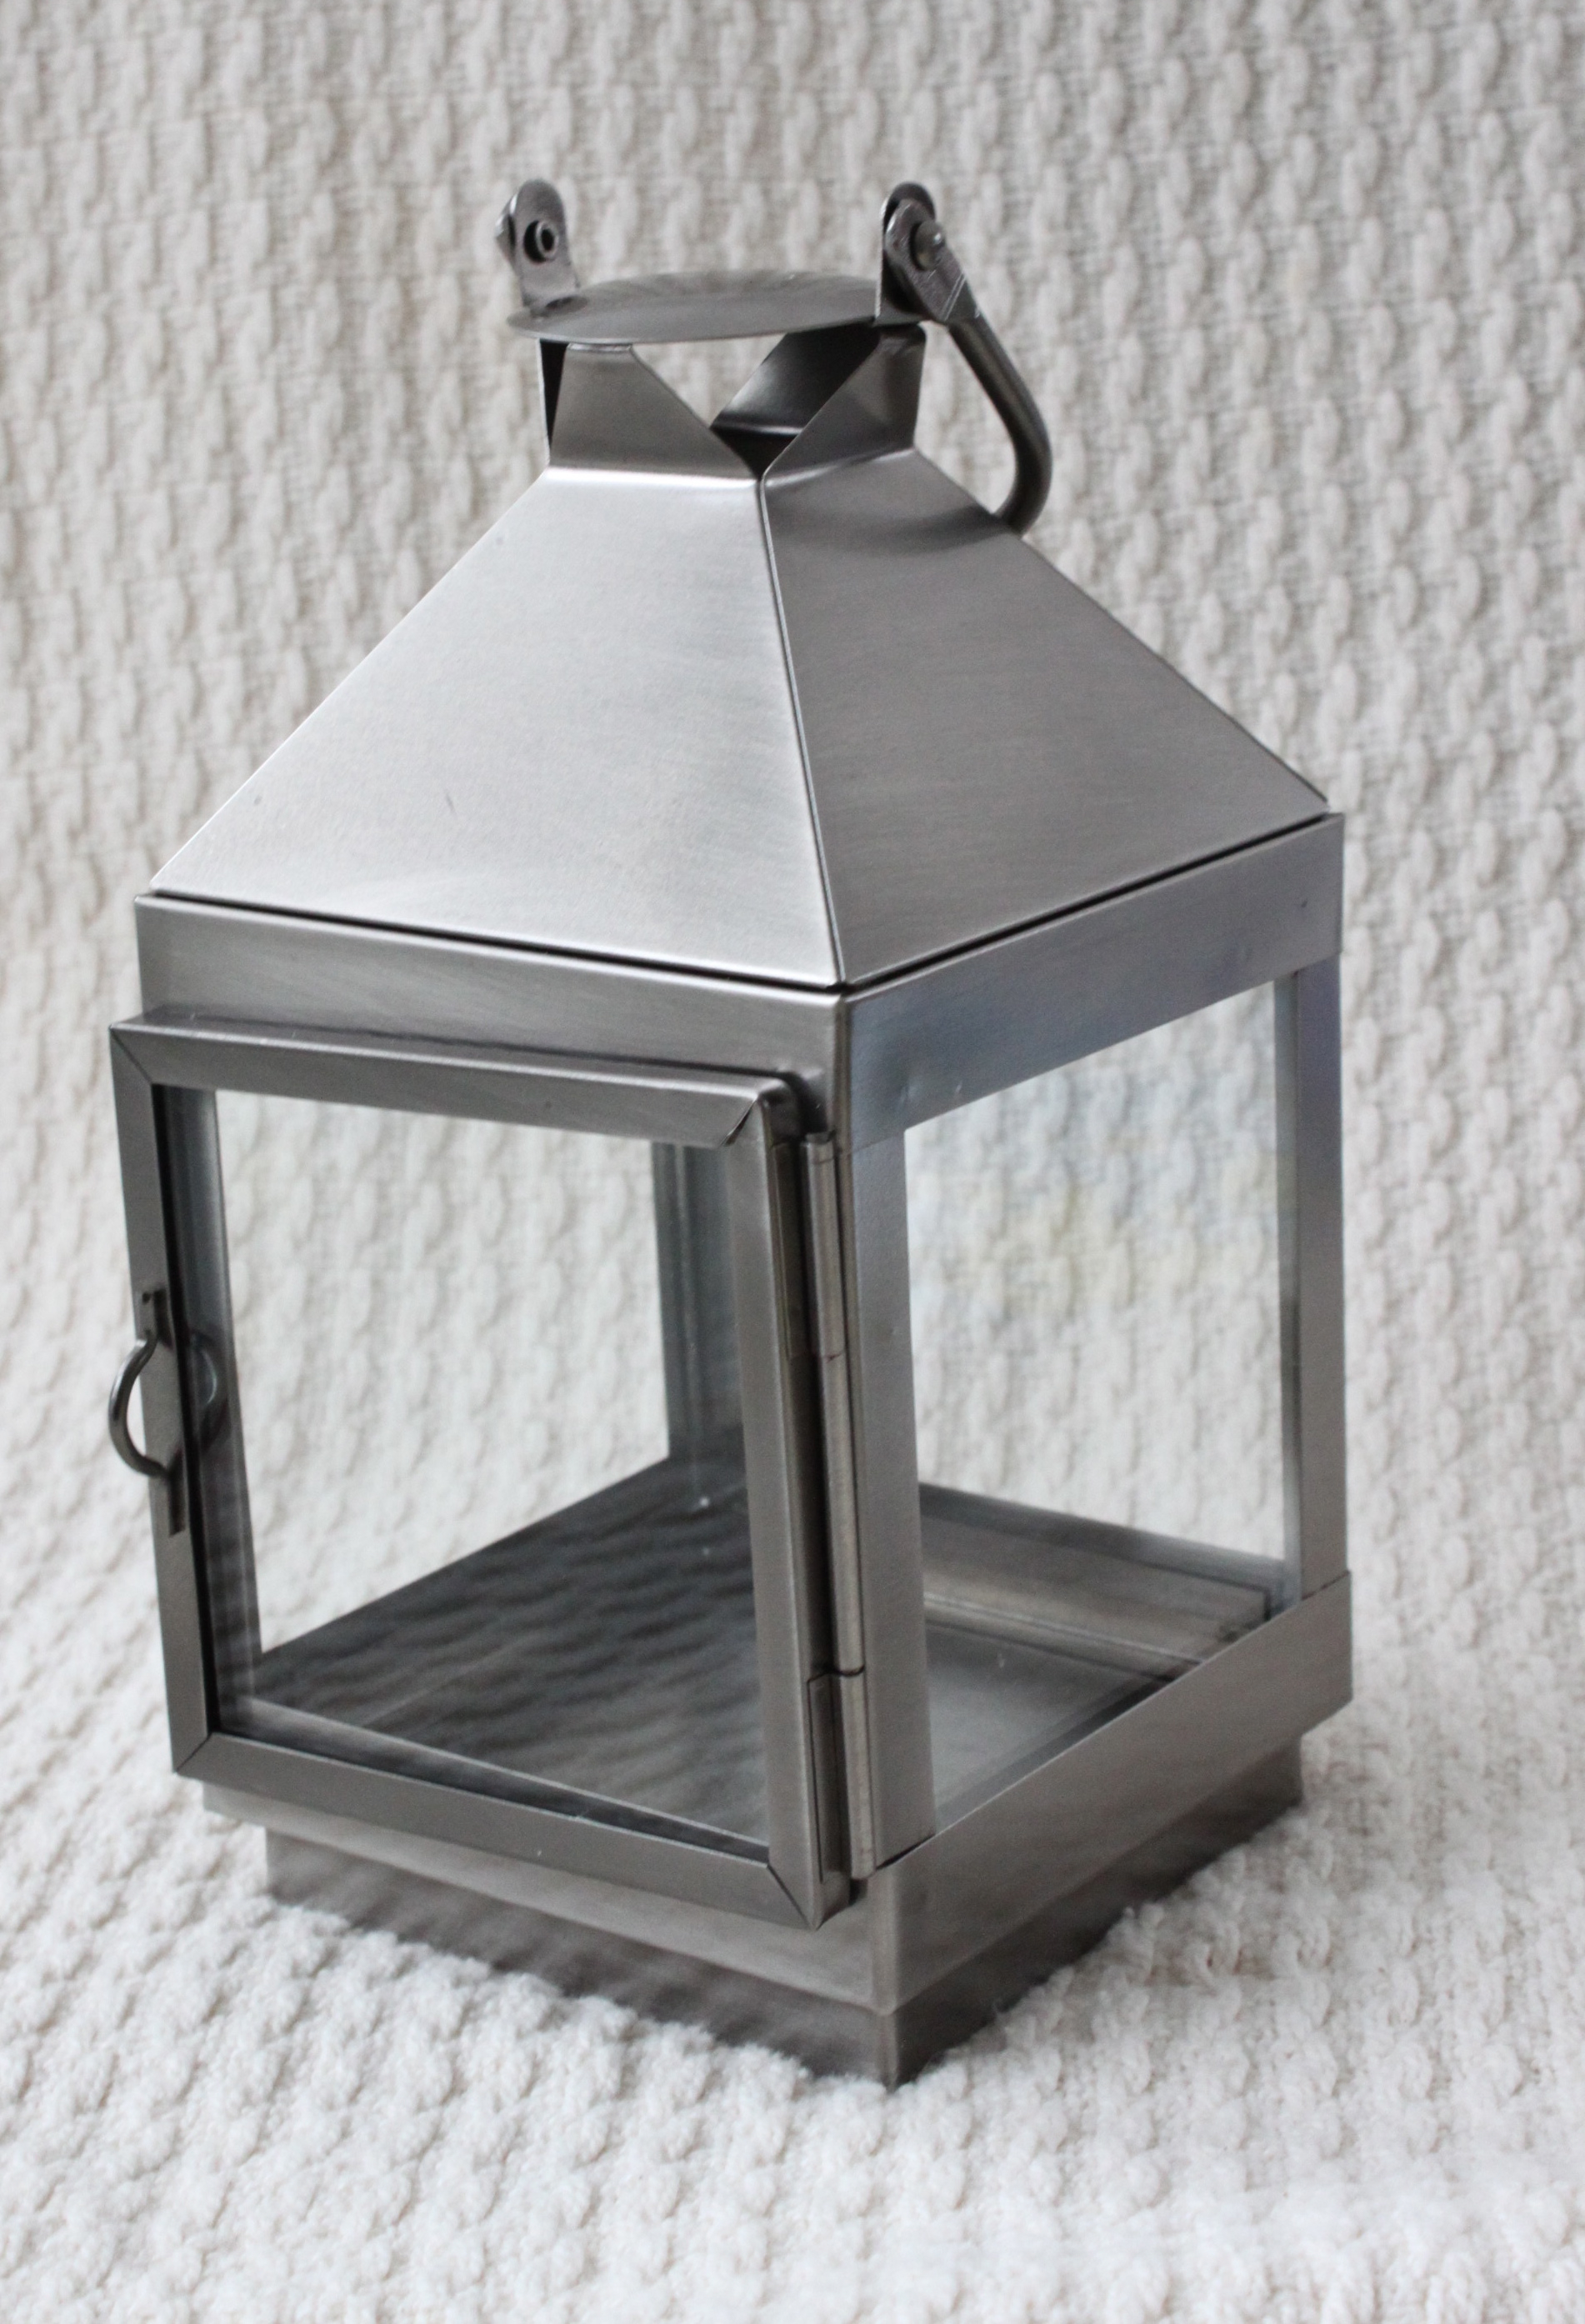 Silver square lantern-small holds votive holder  $12 each